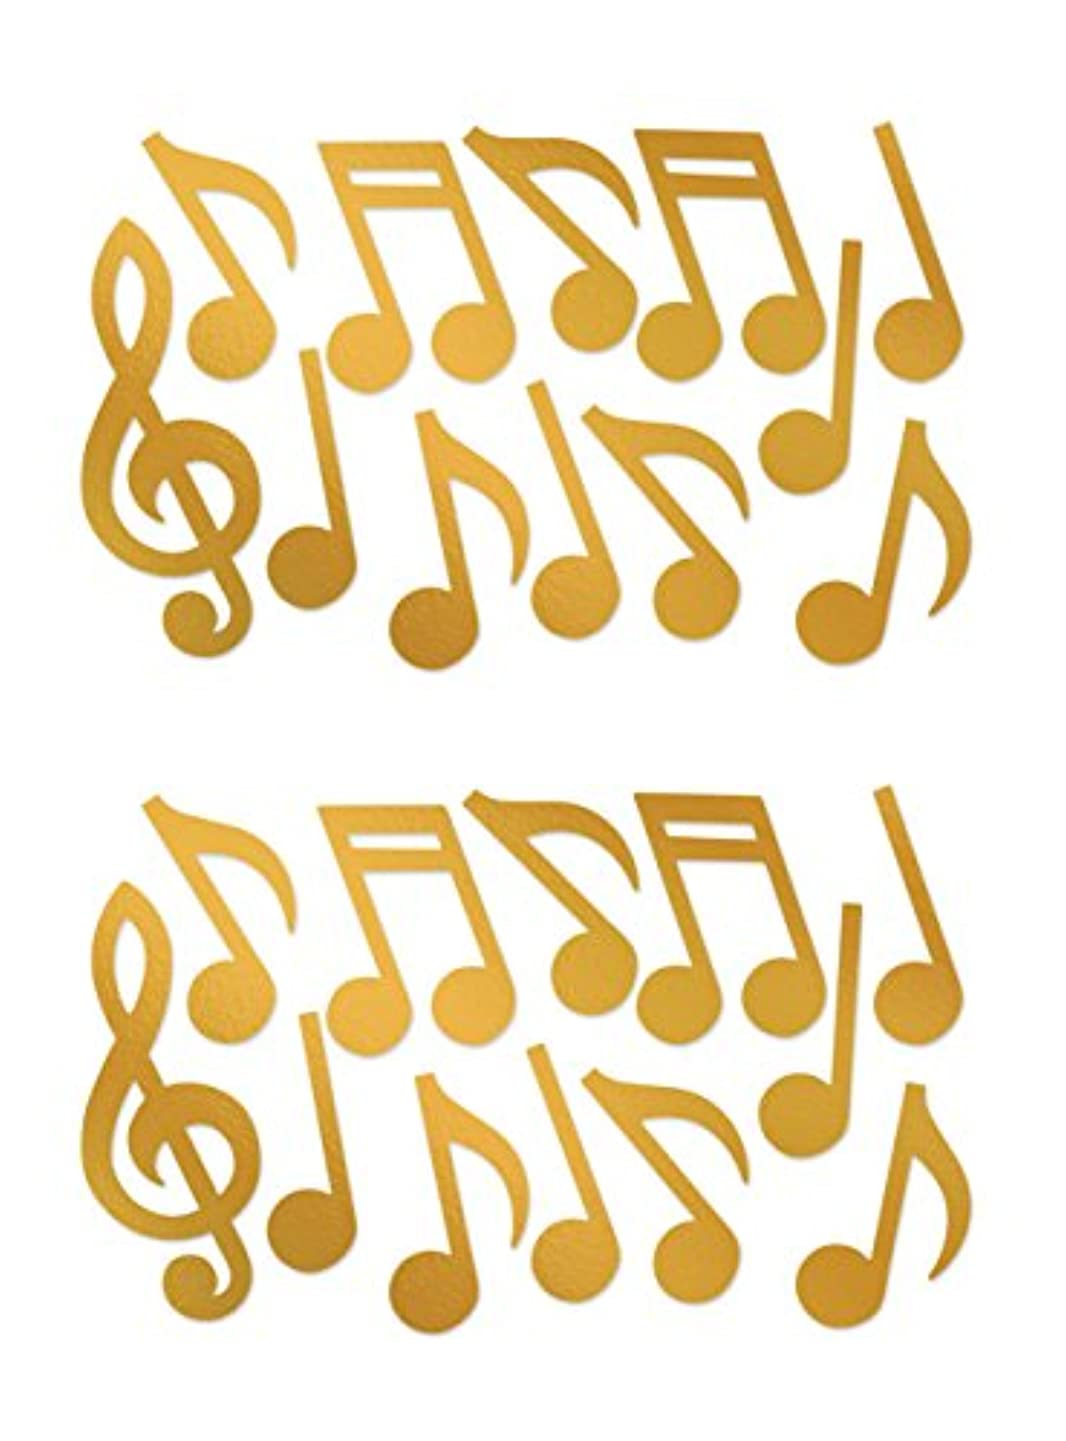 Beistle 55295-GD, 24 Piece Foil Musical Note Silhouettes, 12